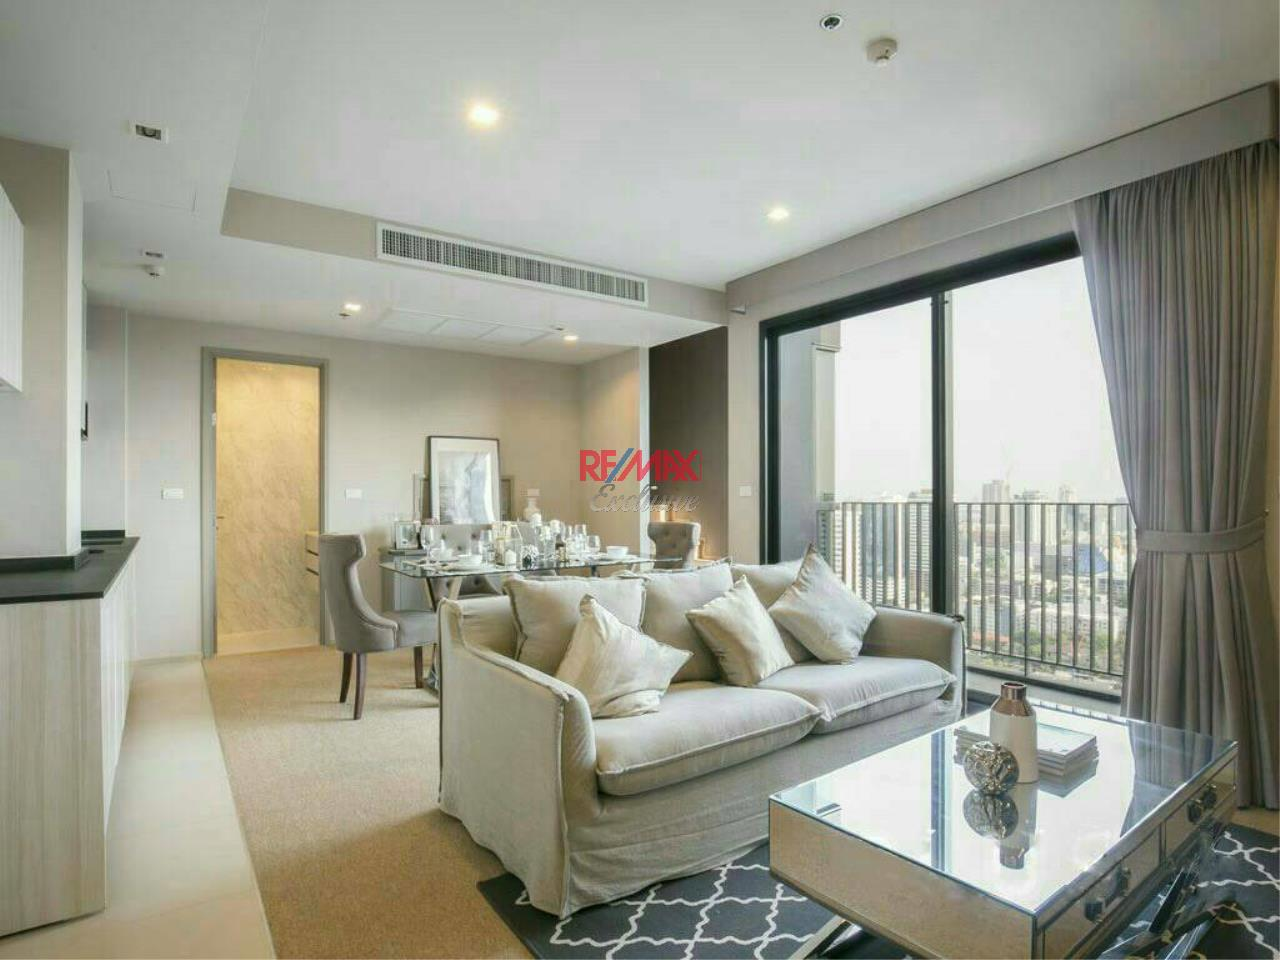 RE/MAX Exclusive Agency's HQ Thonglor., 1 Bedroom DUPLEX, 80 Sqm. Fully-Furnished, Stunning View For Sale with Tenant !!! 1